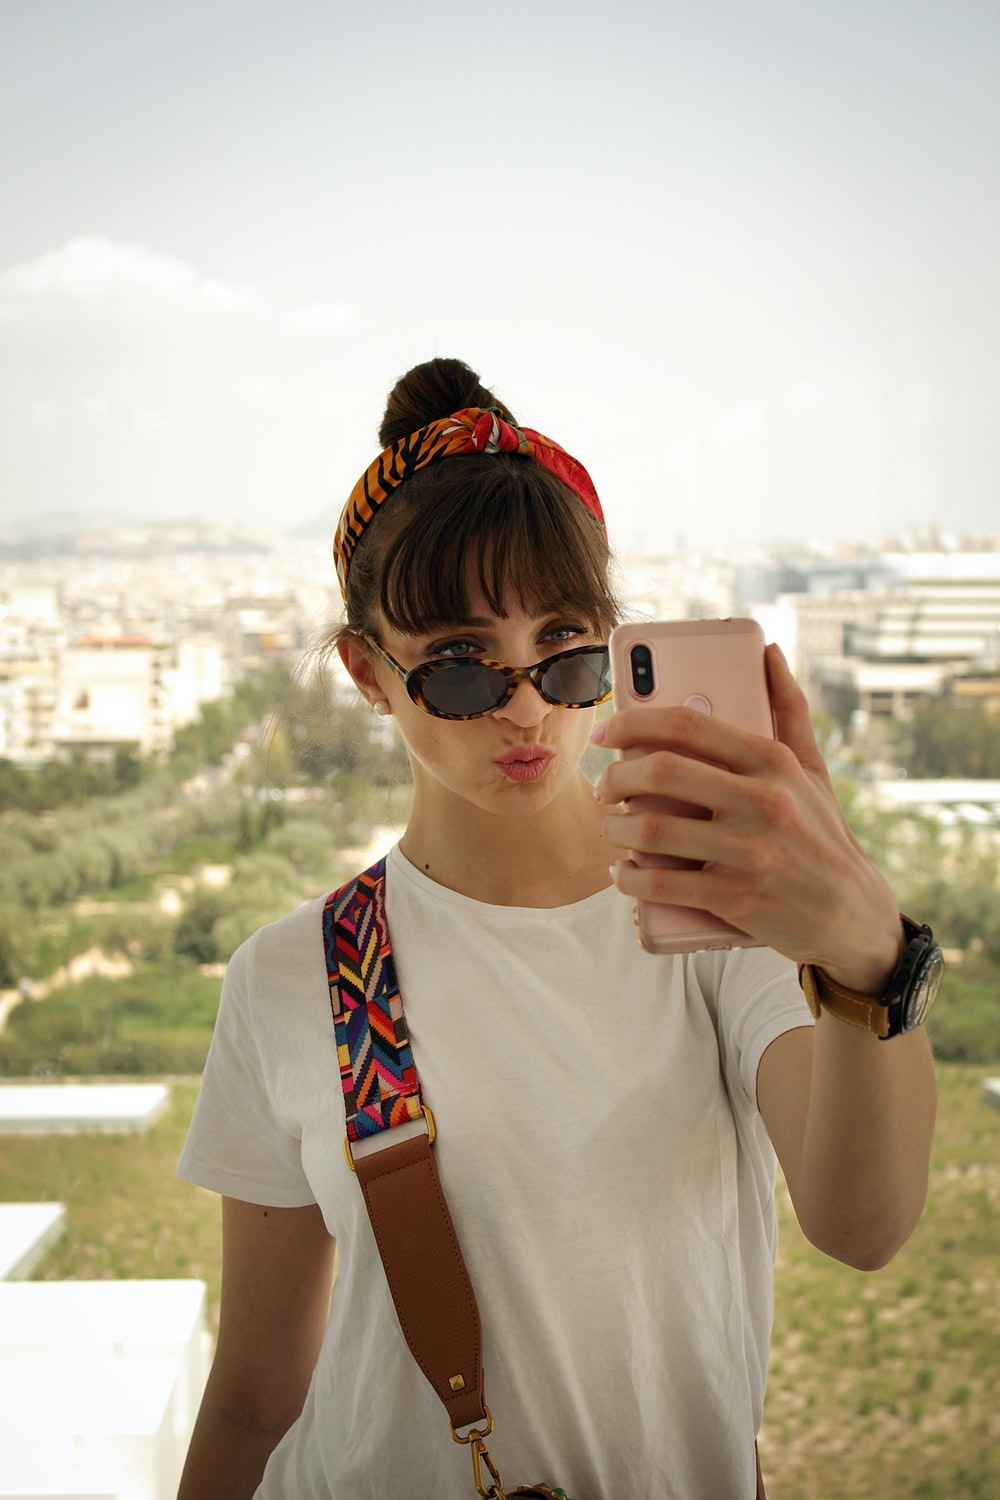 woman pouting her lips while holding smartphone in front of her face